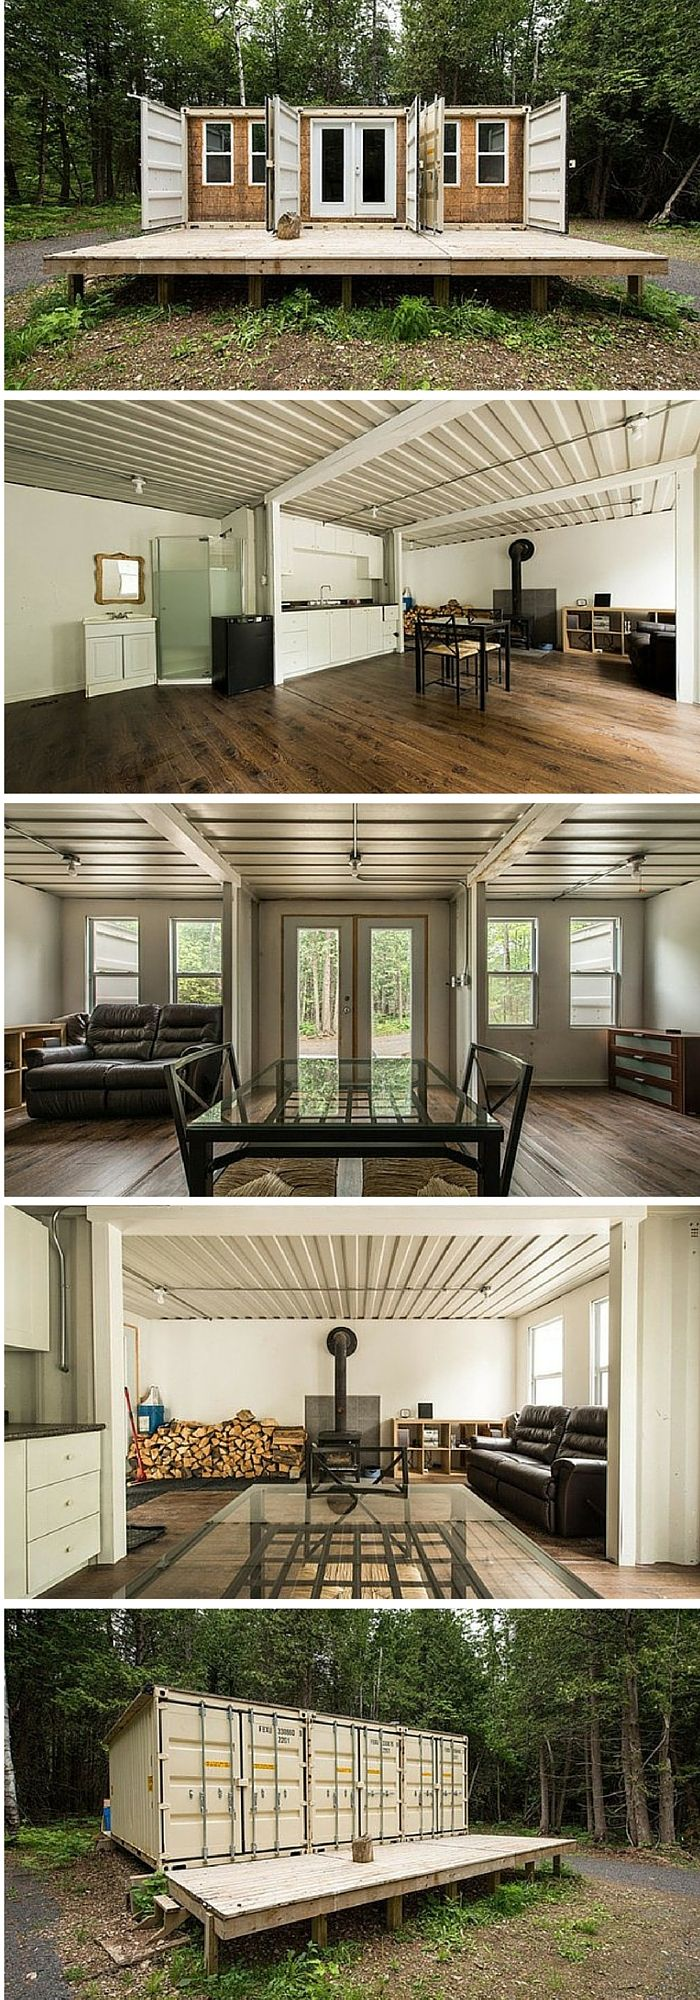 A 355 Square Feet Home Made Of Three Re Purposed Shipping